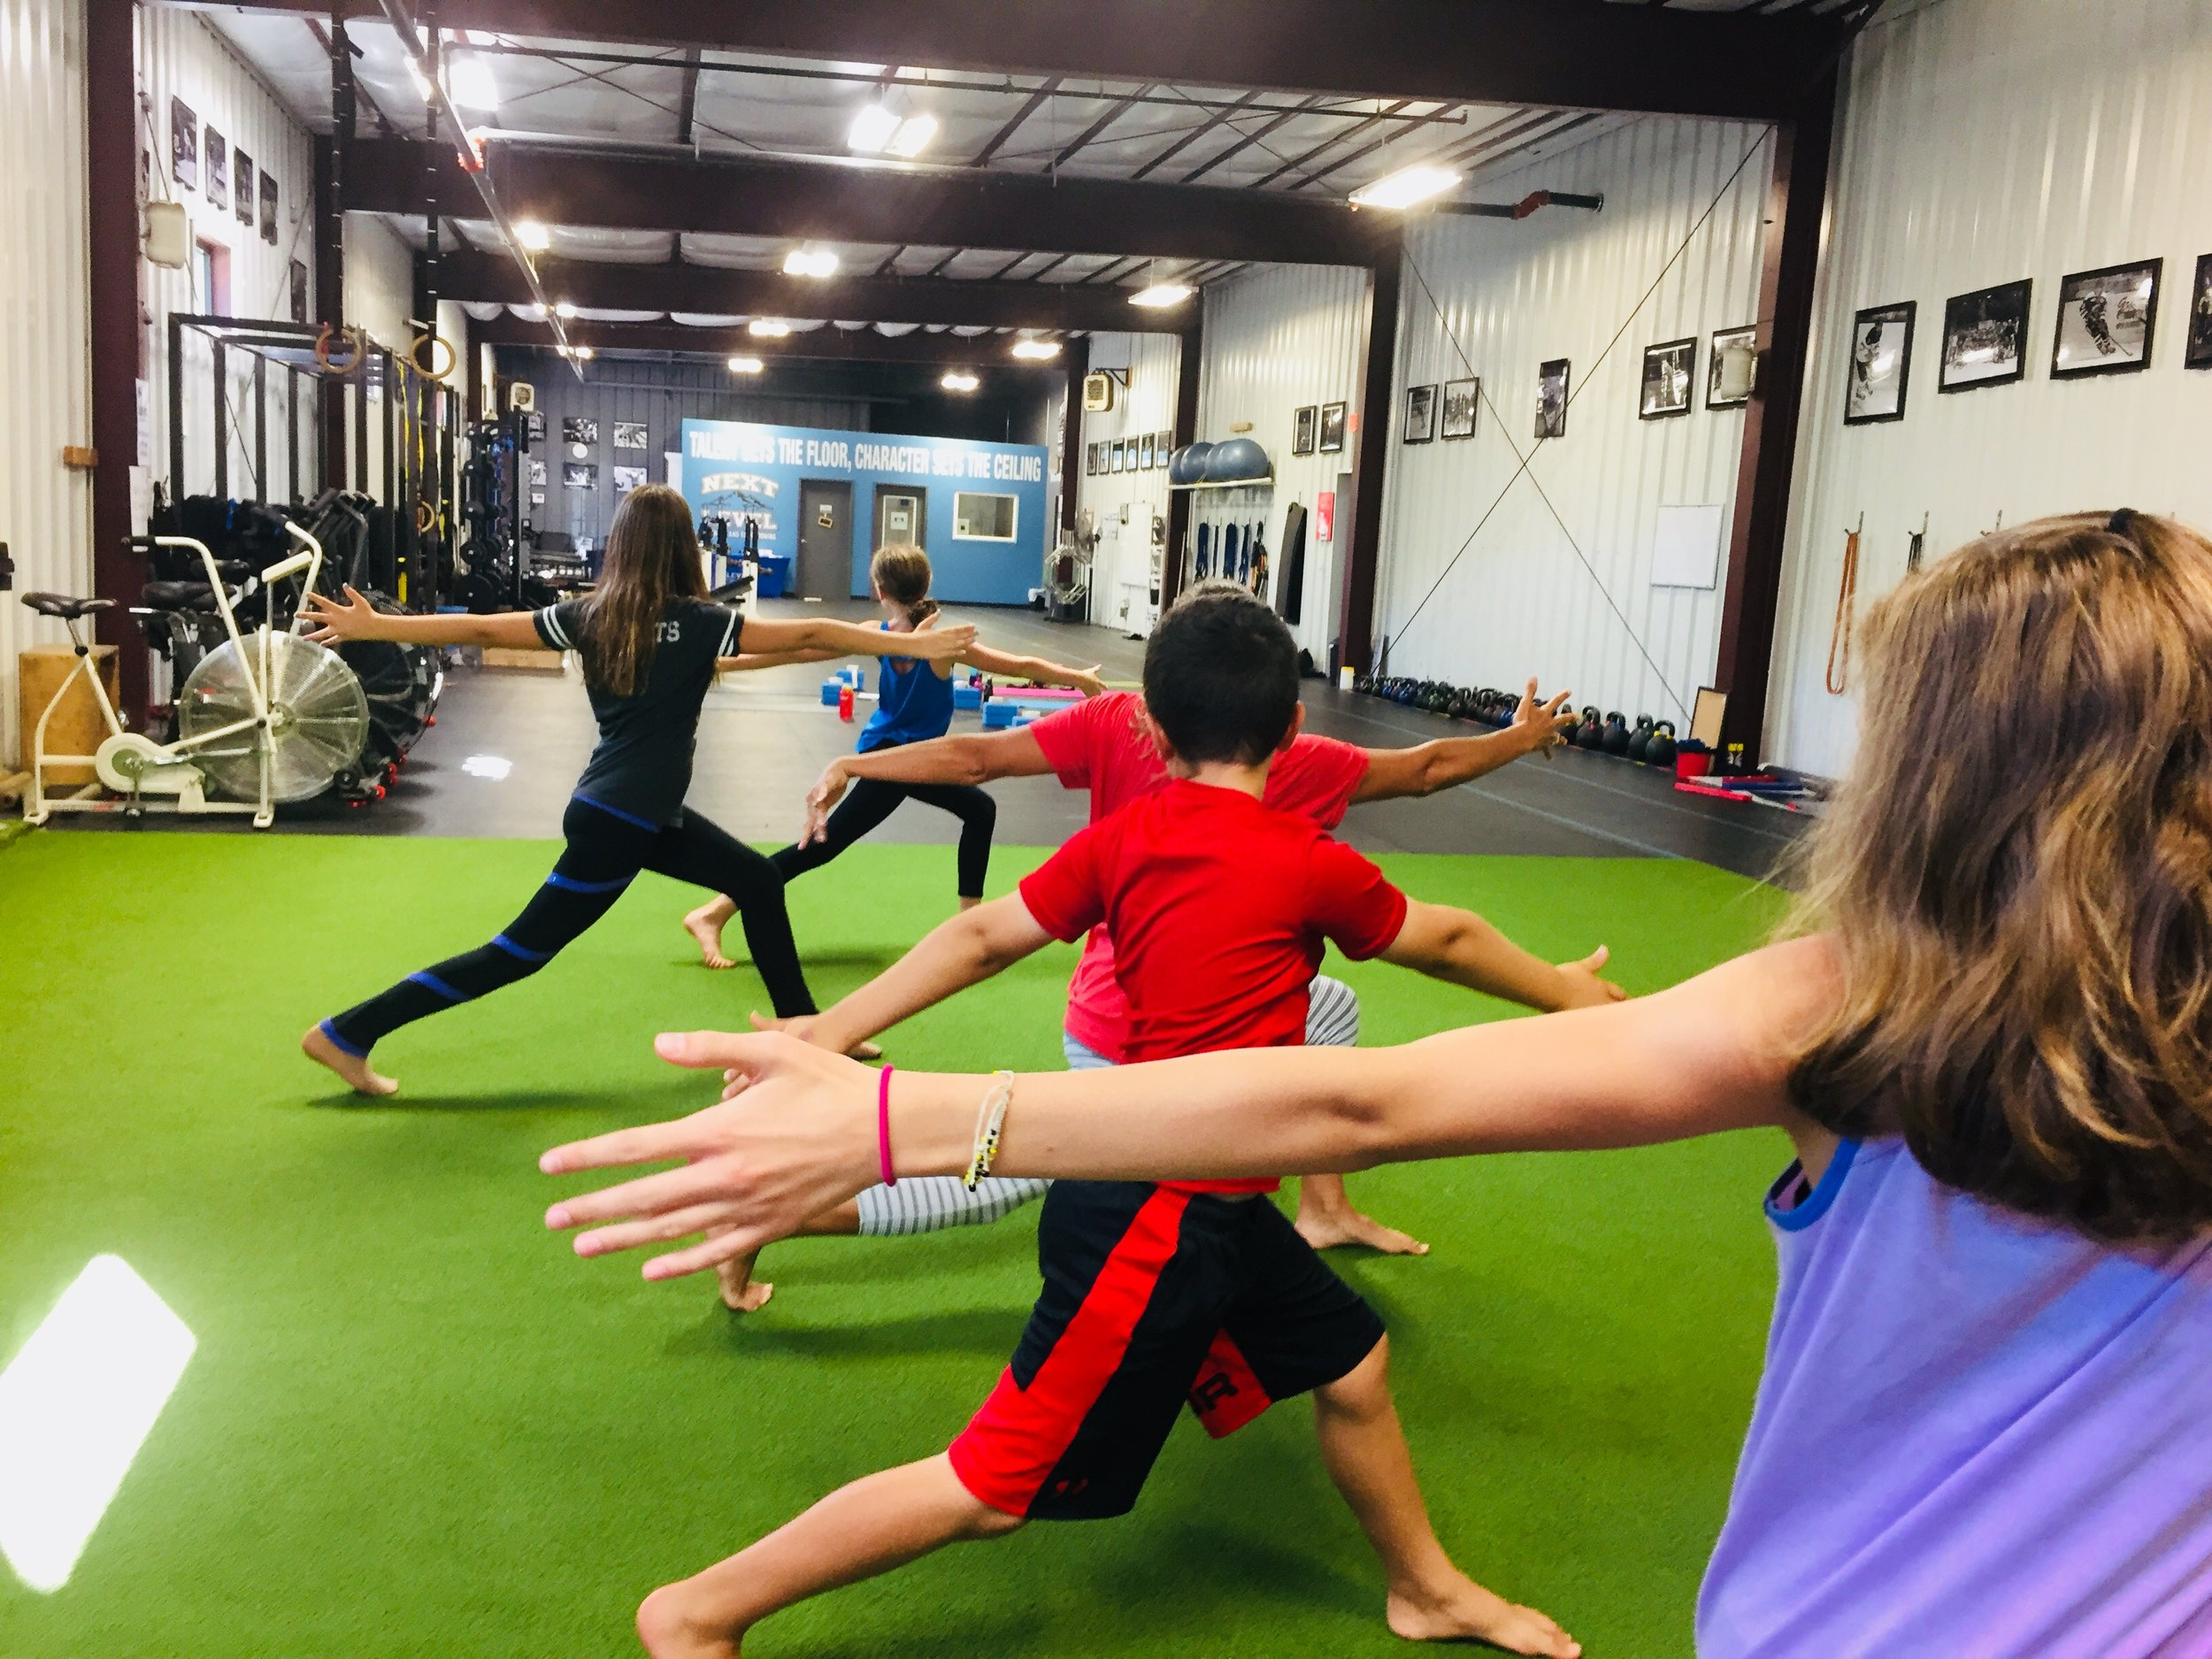 Yoga for Athletes , great work taking yoga from the mat to the turf for yoga mobility work. Classes for athletes are  Sundays @ 4pm  at Next Level Strength & Conditioning (Fairport).